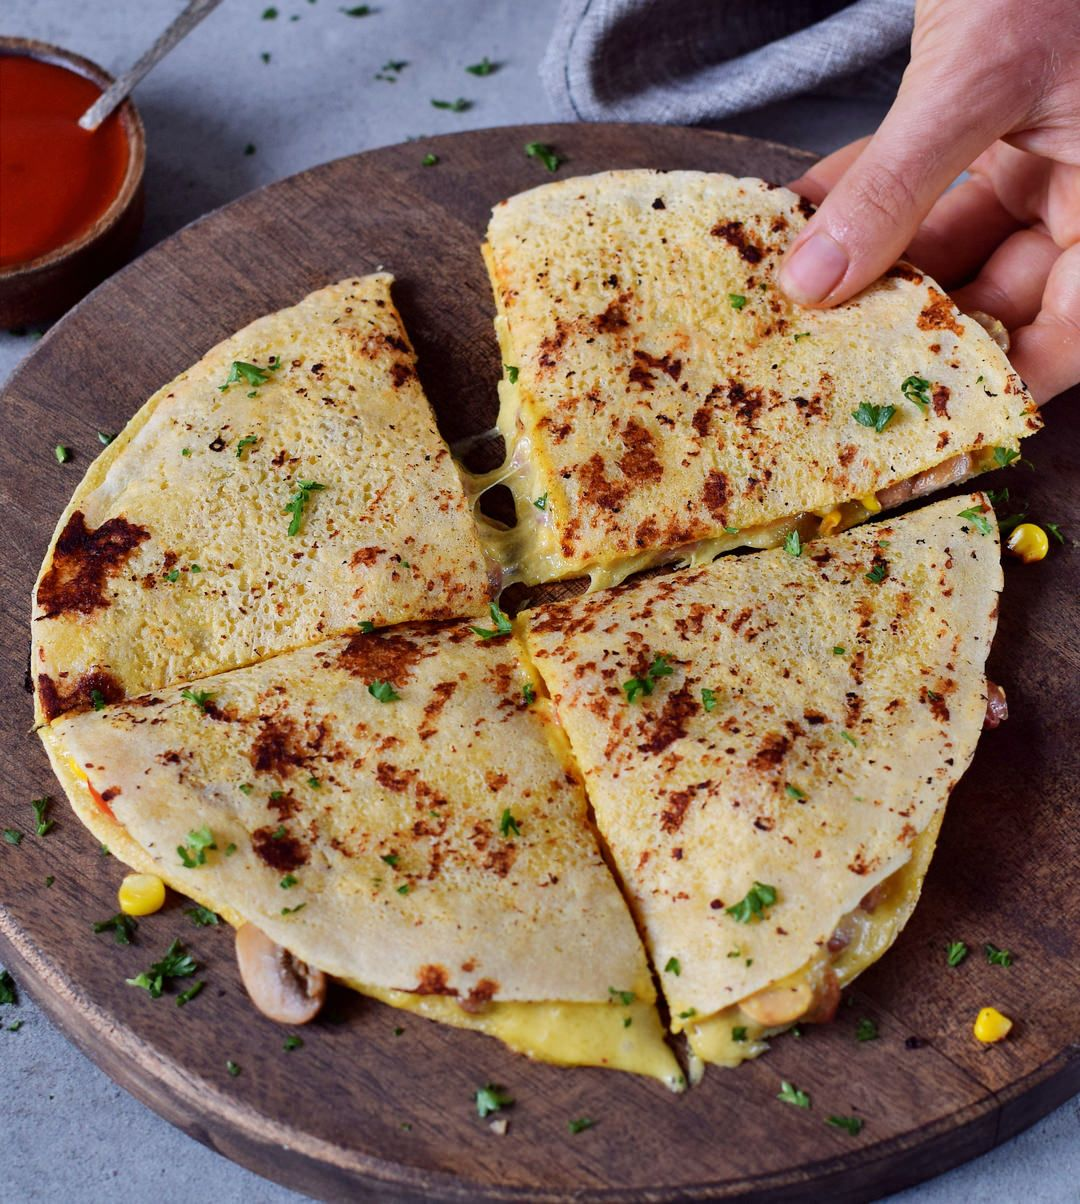 These vegan quesadillas are perfect for lunch, dinner or as a filling snack! The recipe is gluten-free, dairy-free, nut-free, and super easy to make. #vegan #plantbased #glutenfree #quesadillas #lunch #dinner | elavegan.com #maketacoseasoning